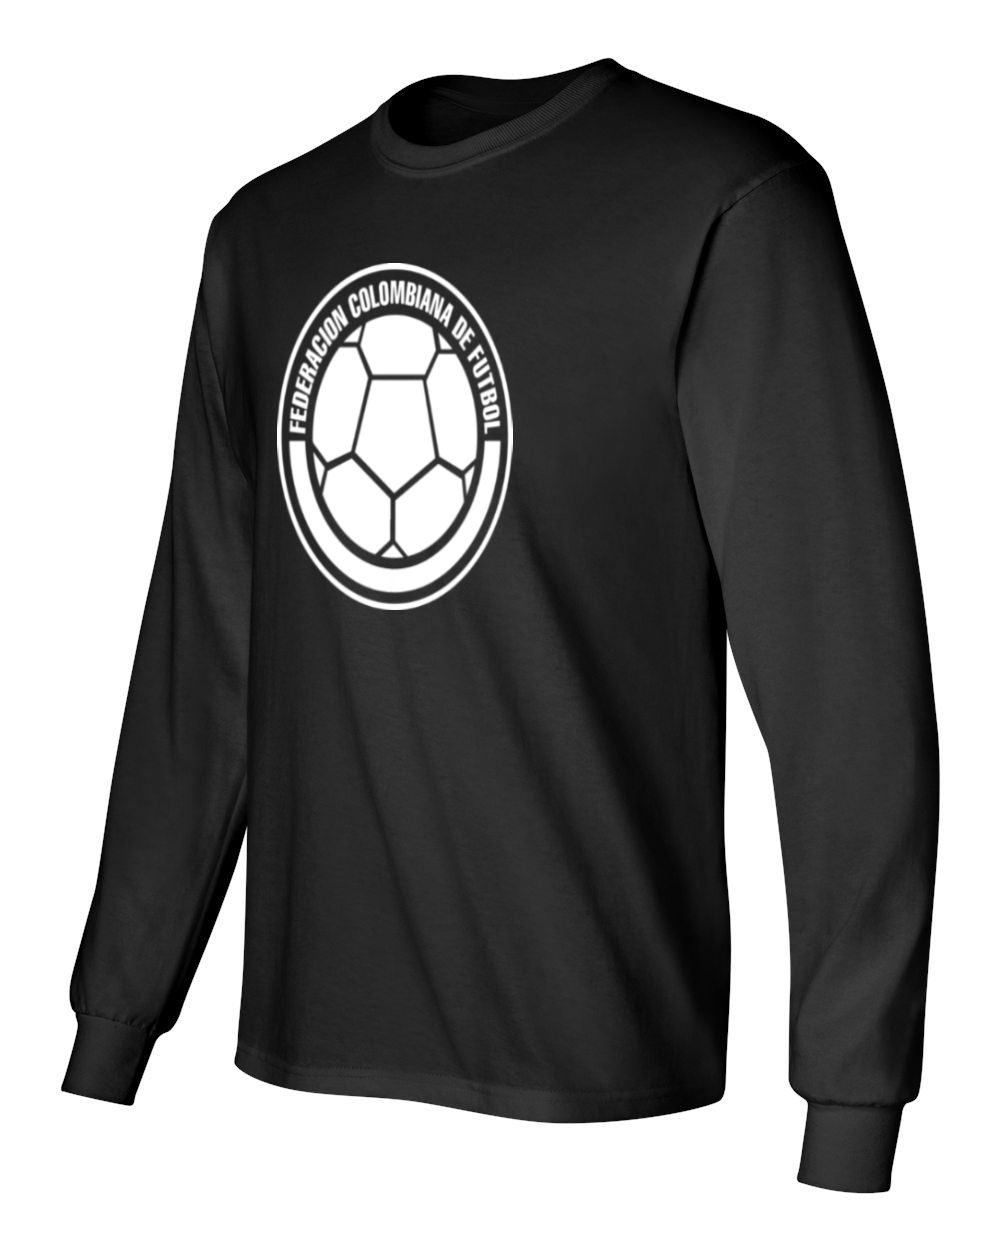 5ab7c95ded3 Amazon.com   Tcamp Colombia 2018 National Soccer  1 David OSPINA World  Championship Men s Long Sleeve T-Shirt   Sports   Outdoors